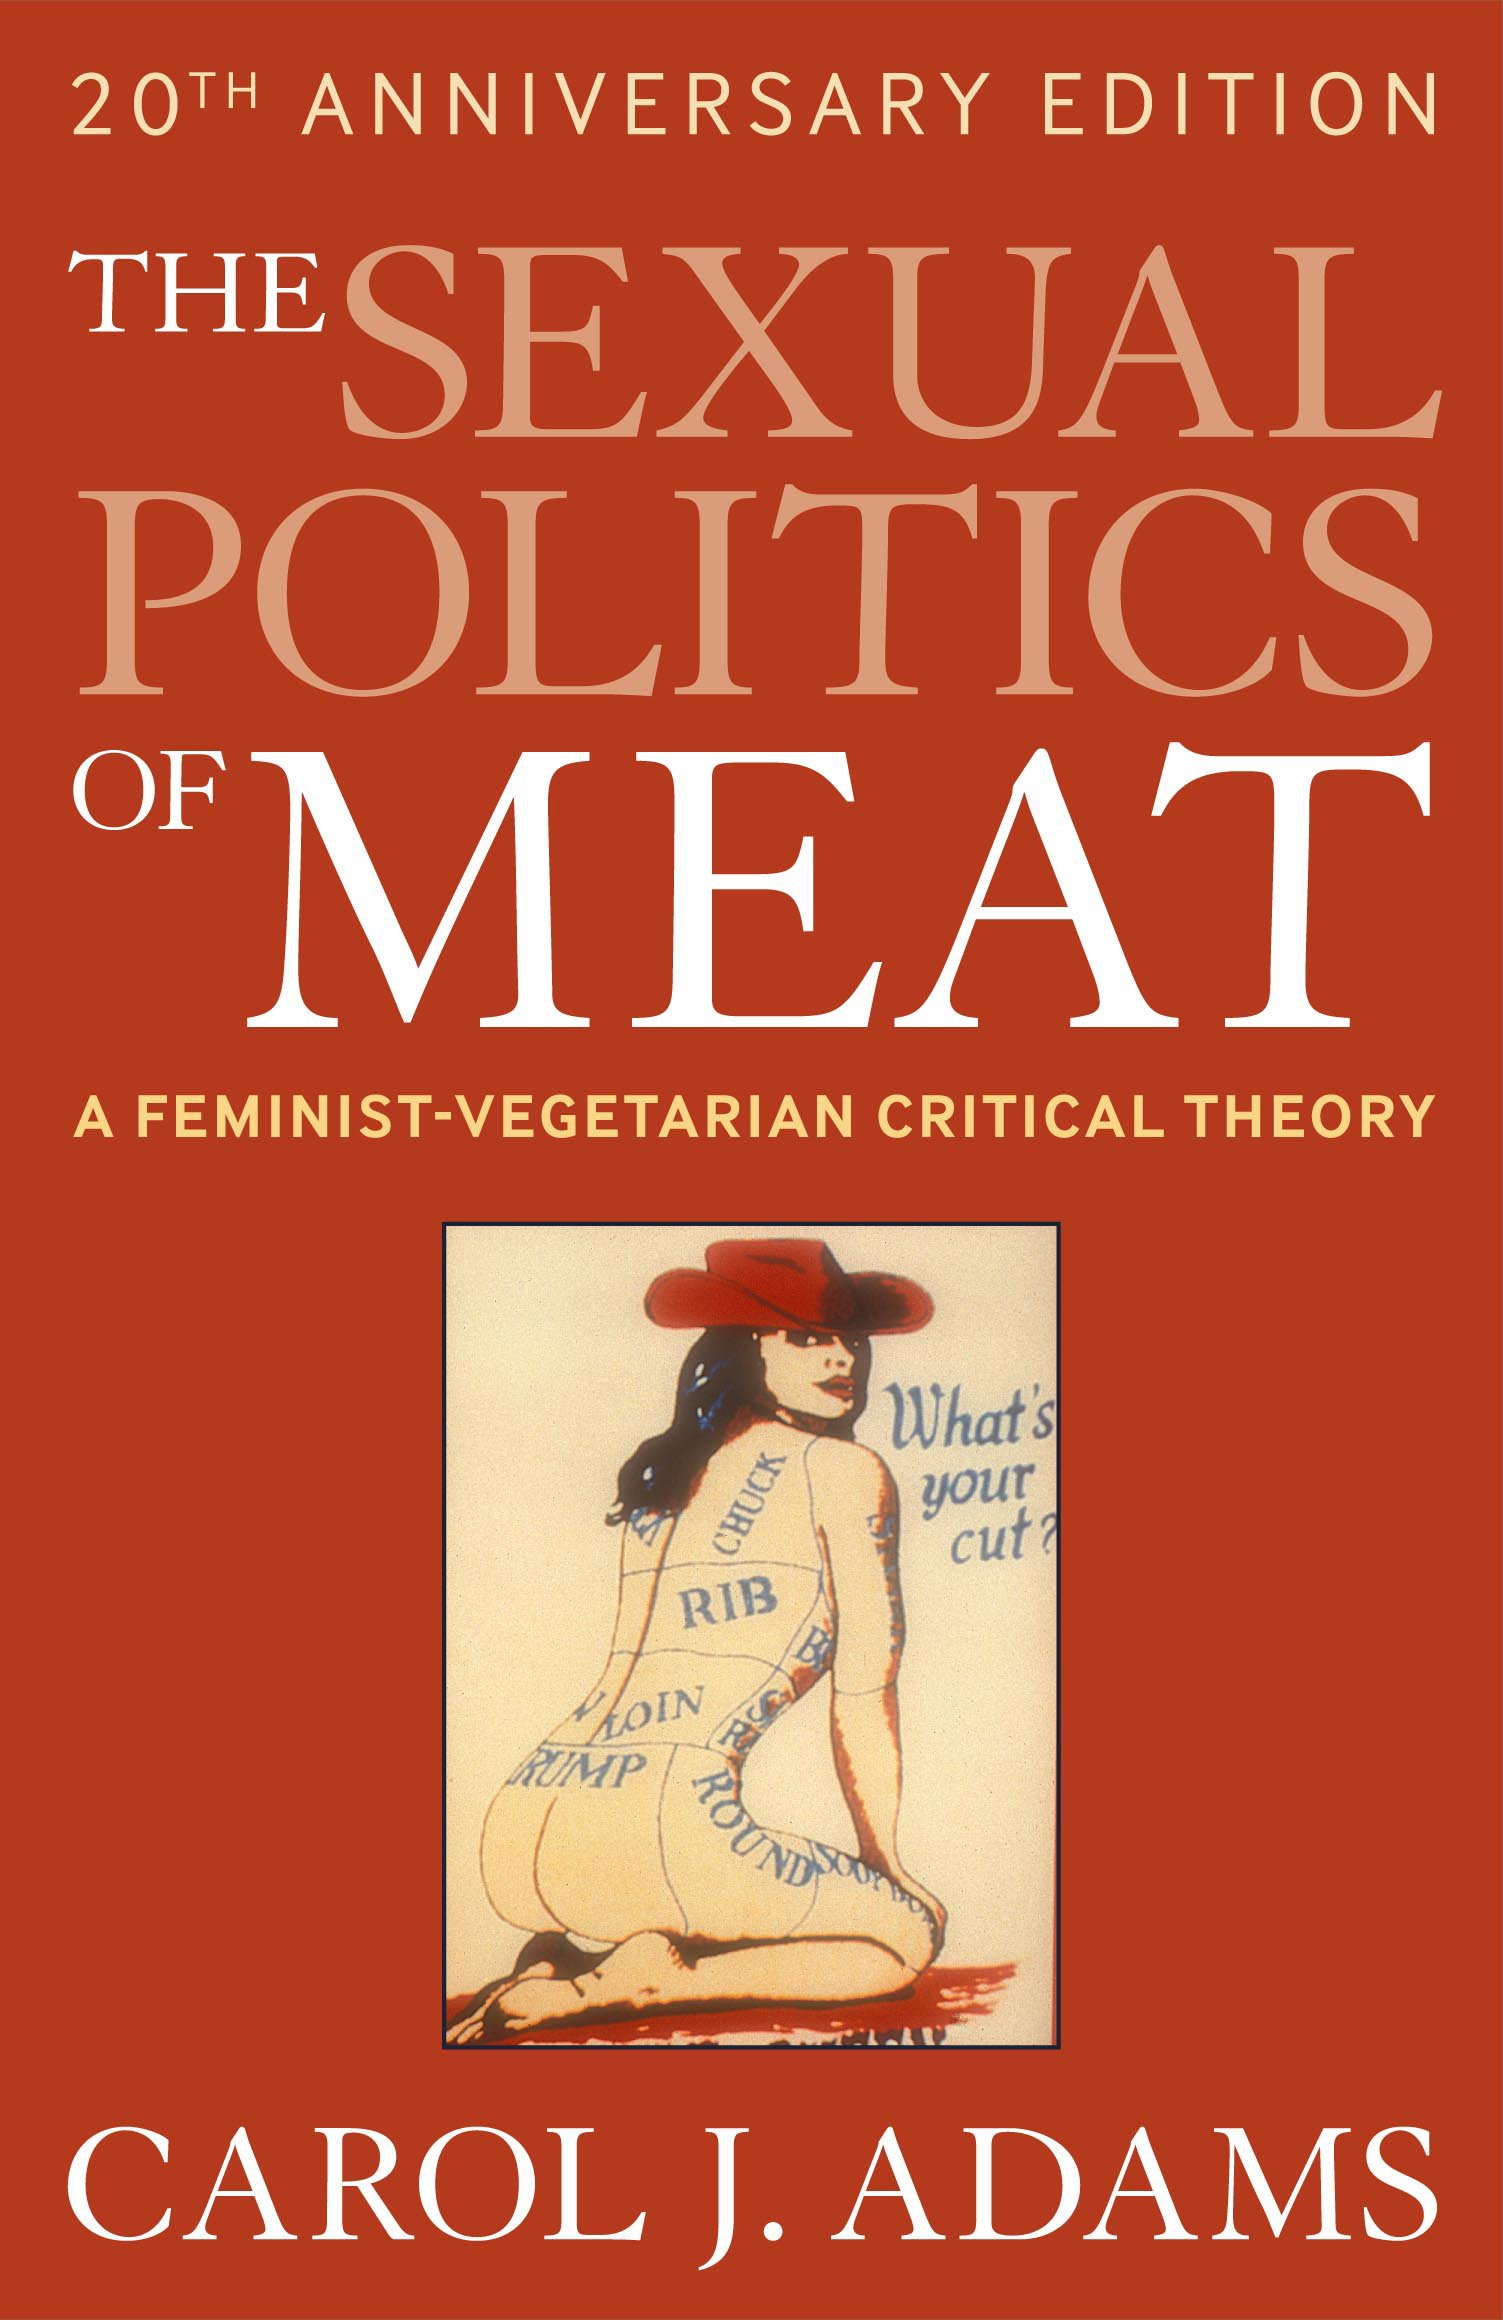 http://fatgayvegan.com/wp-content/uploads/2015/09/the-sexual-politics-of-meat-a-feminist-vegetarian-critical-theory-20th-anniversary-edition_3256186.jpg